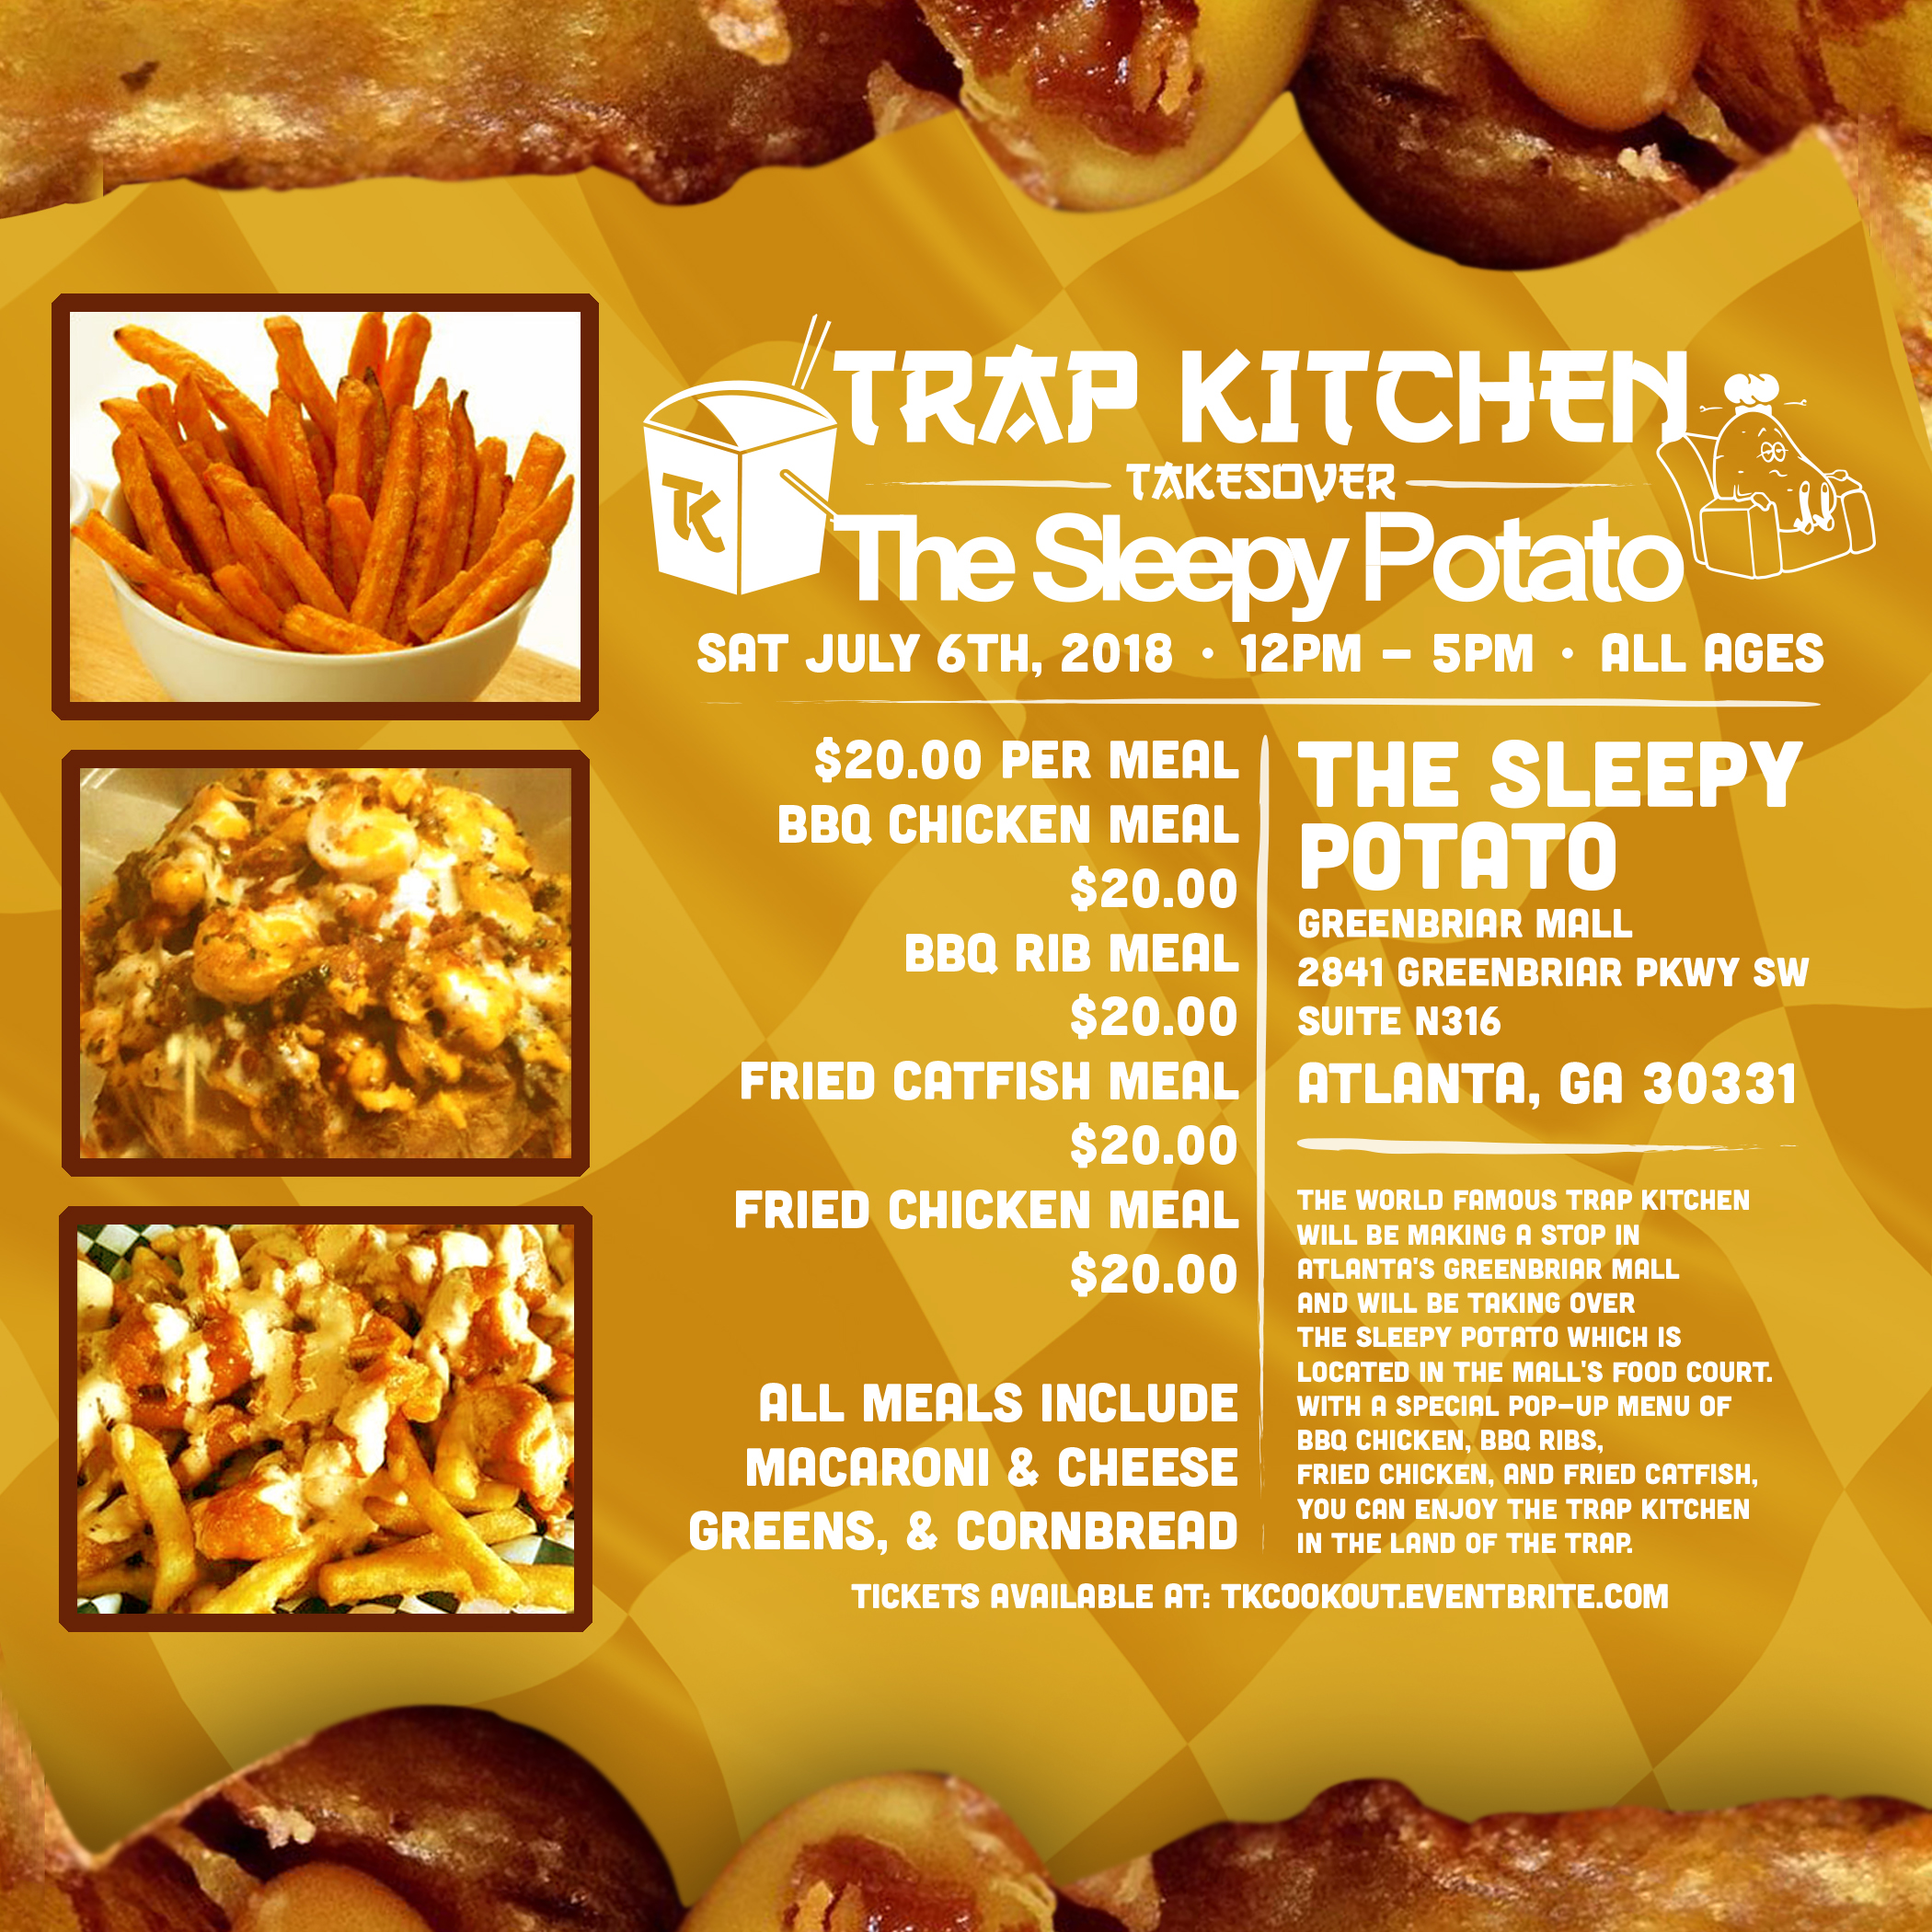 More info on The Trap Kitchen